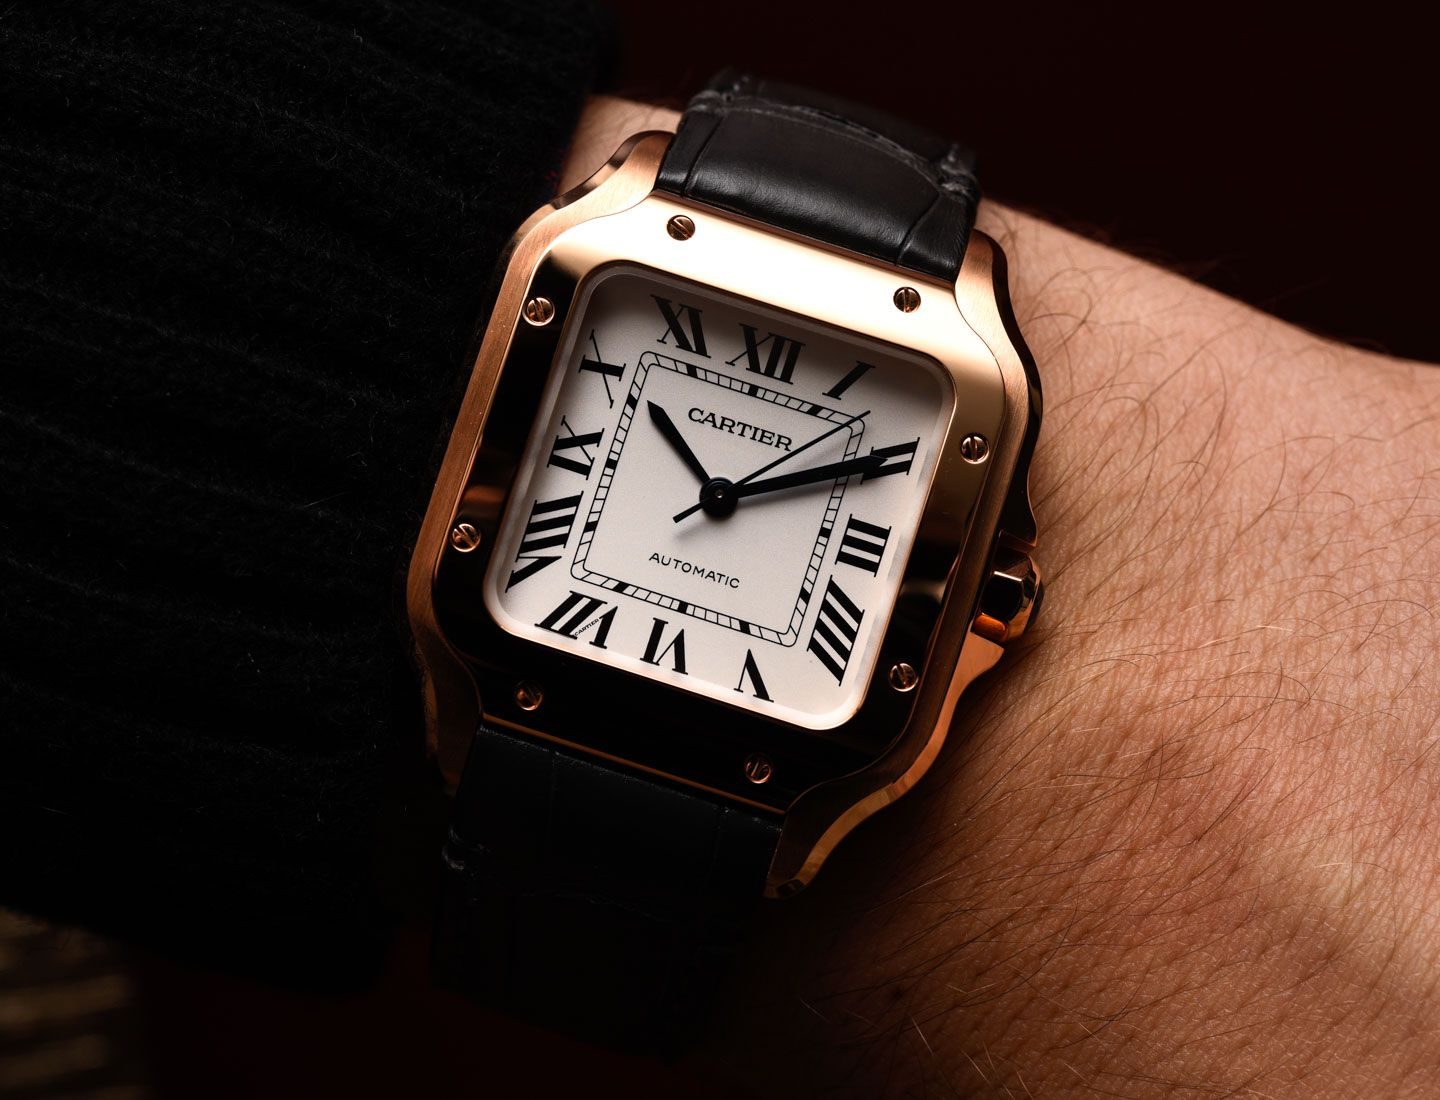 Pin By Carlos Gonzalez Perez On Timepieces And Watches Cartier Santos Watch Cartier Santos Cartier